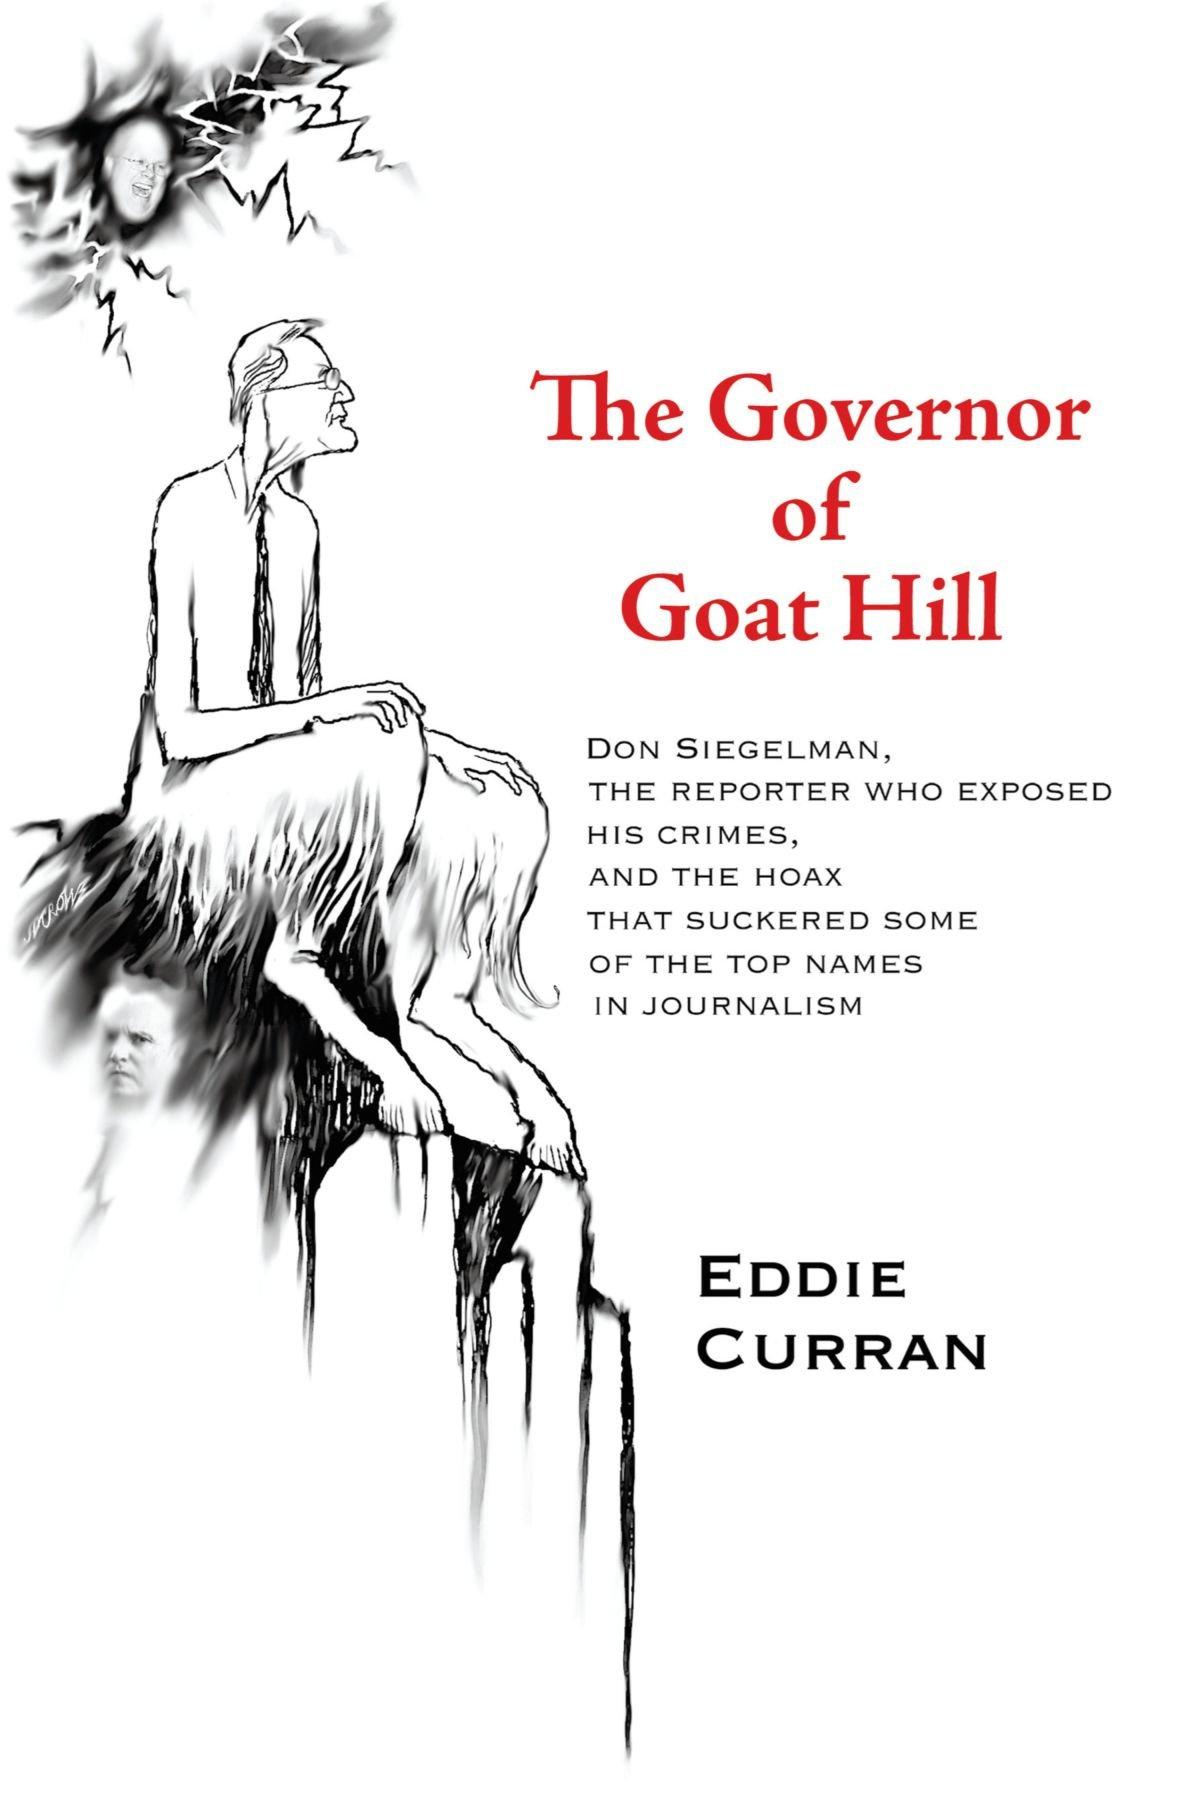 The Governor of Goat Hill: Don Siegelman, the Reporter who Exposed his Crimes, and the Hoax that Suckered some of the Top Names in Journalism